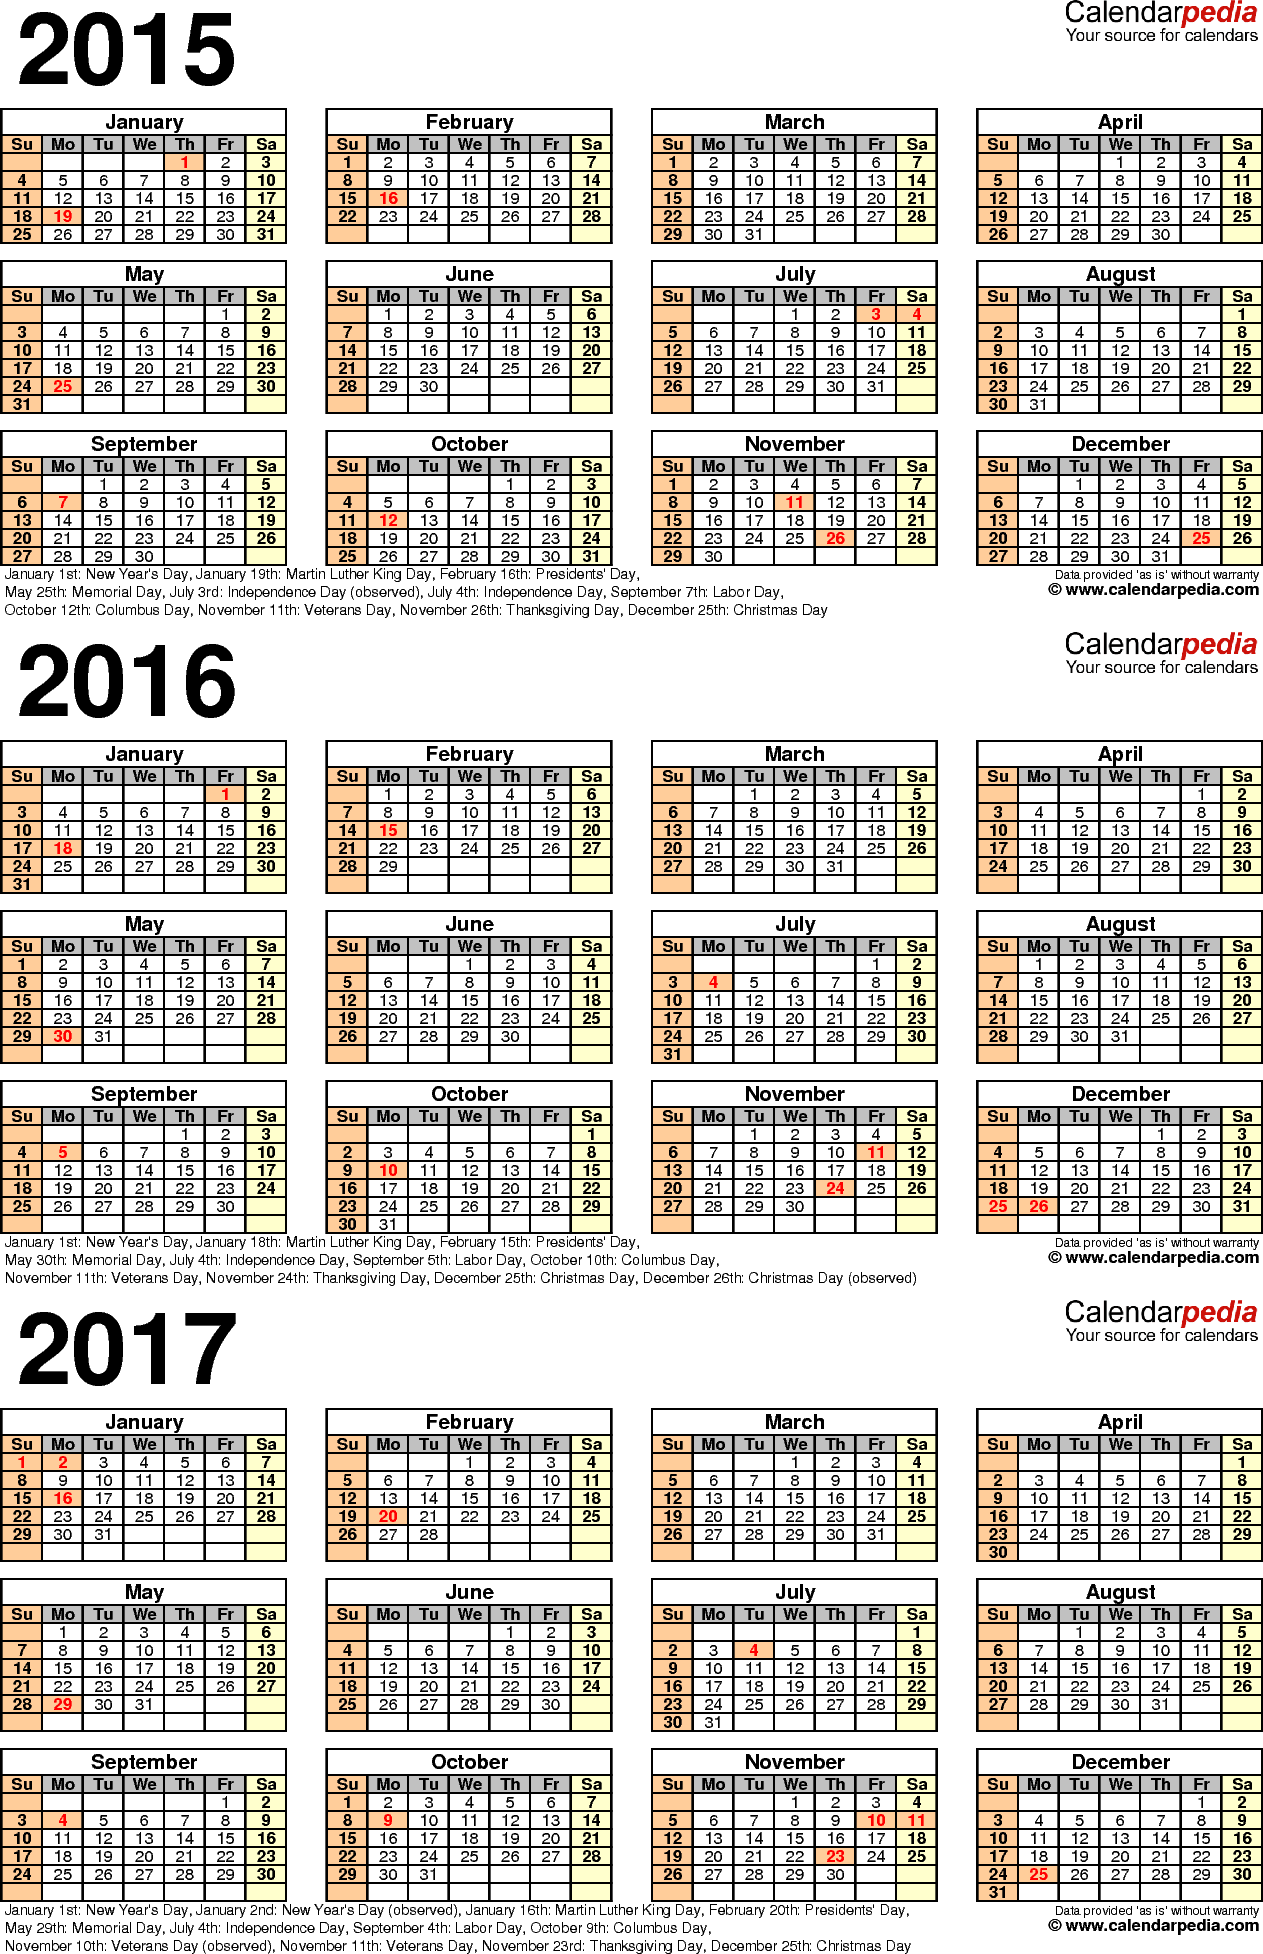 Template 4: Word template for three year calendar 2015-2017 (portrait orientation, 1 page)